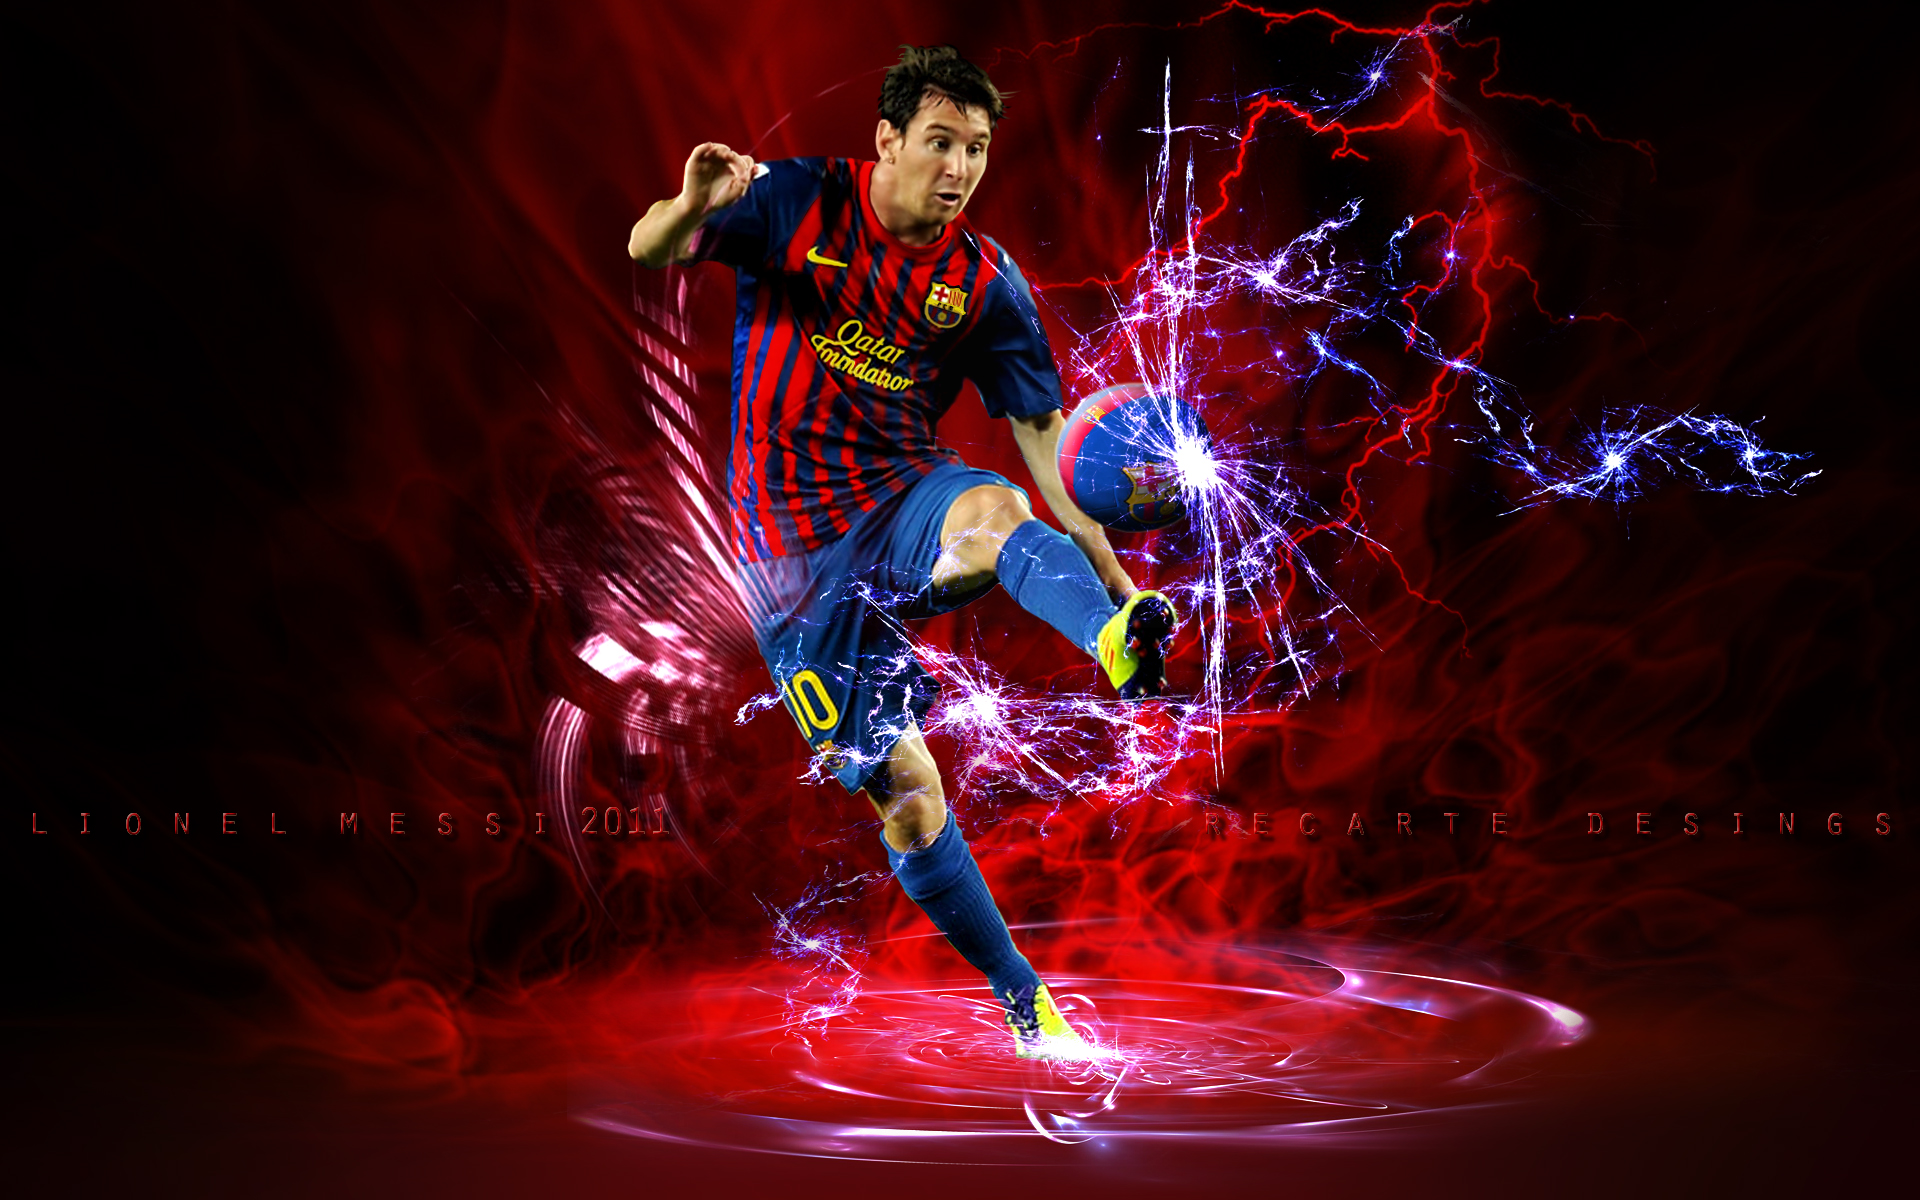 1920x1200 Lionel Messi desktop PC and Mac wallpaper 1920x1200